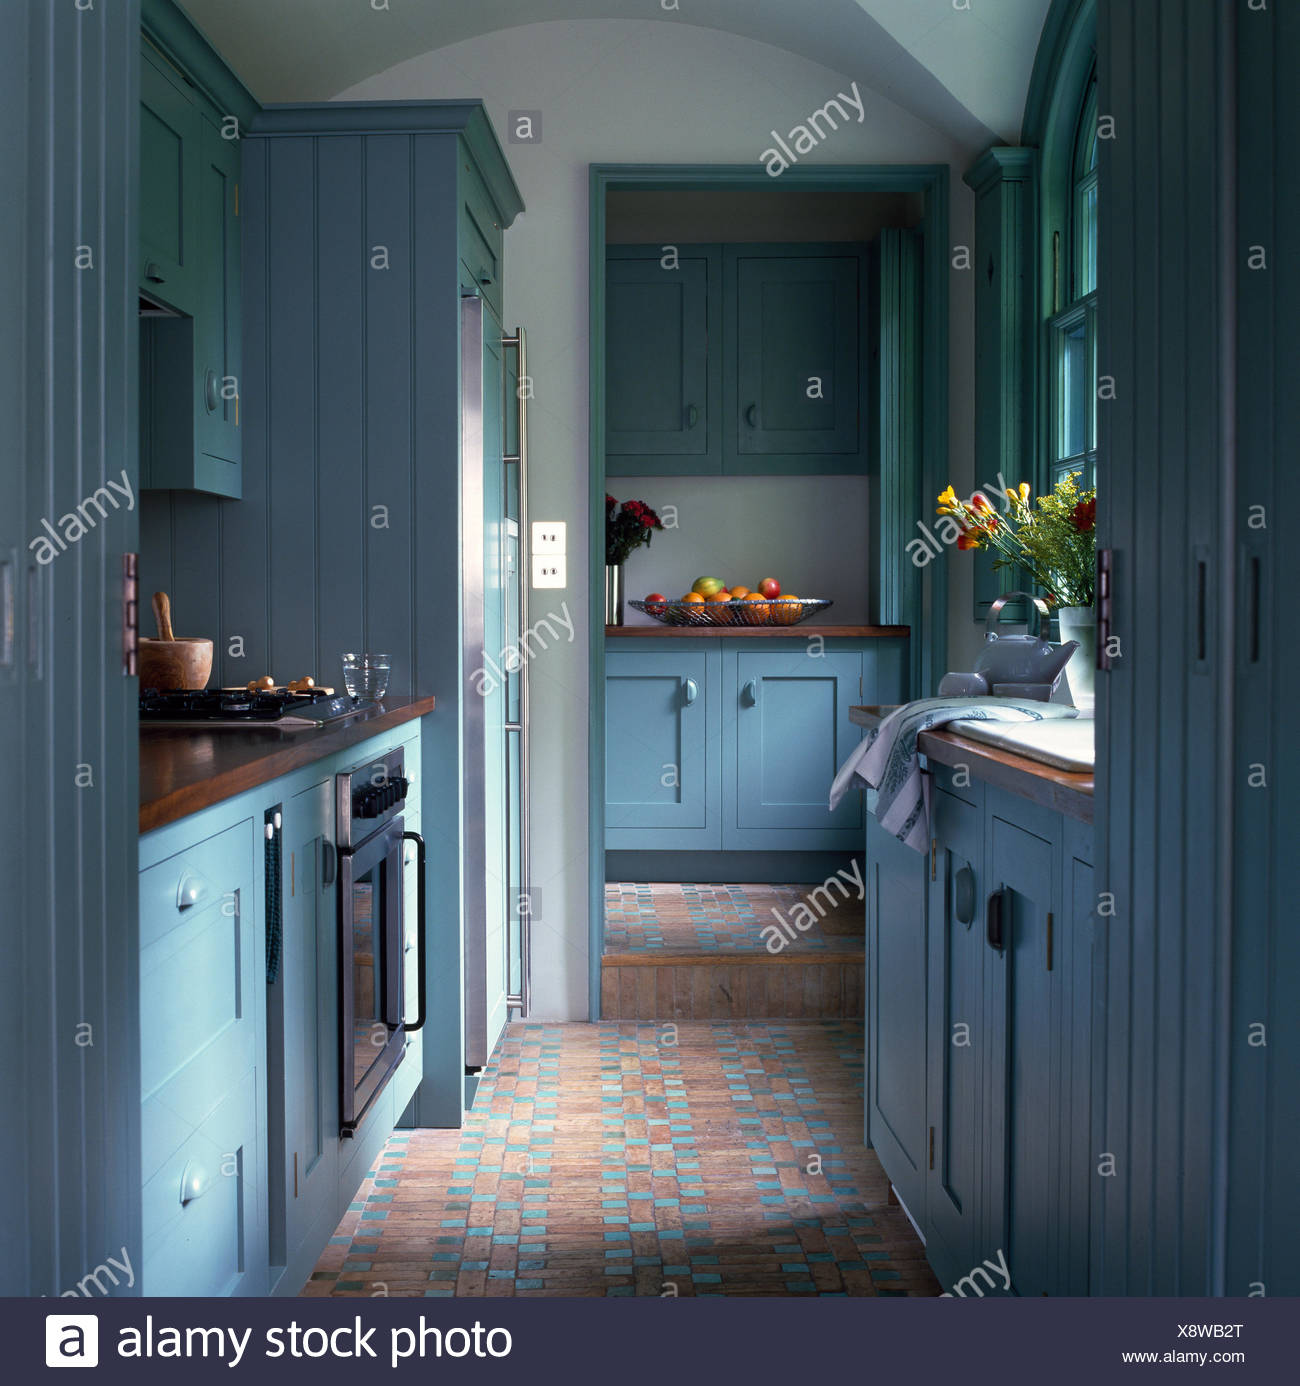 Galley Kitchen Stock Photos & Galley Kitchen Stock Images - Page 2 ...